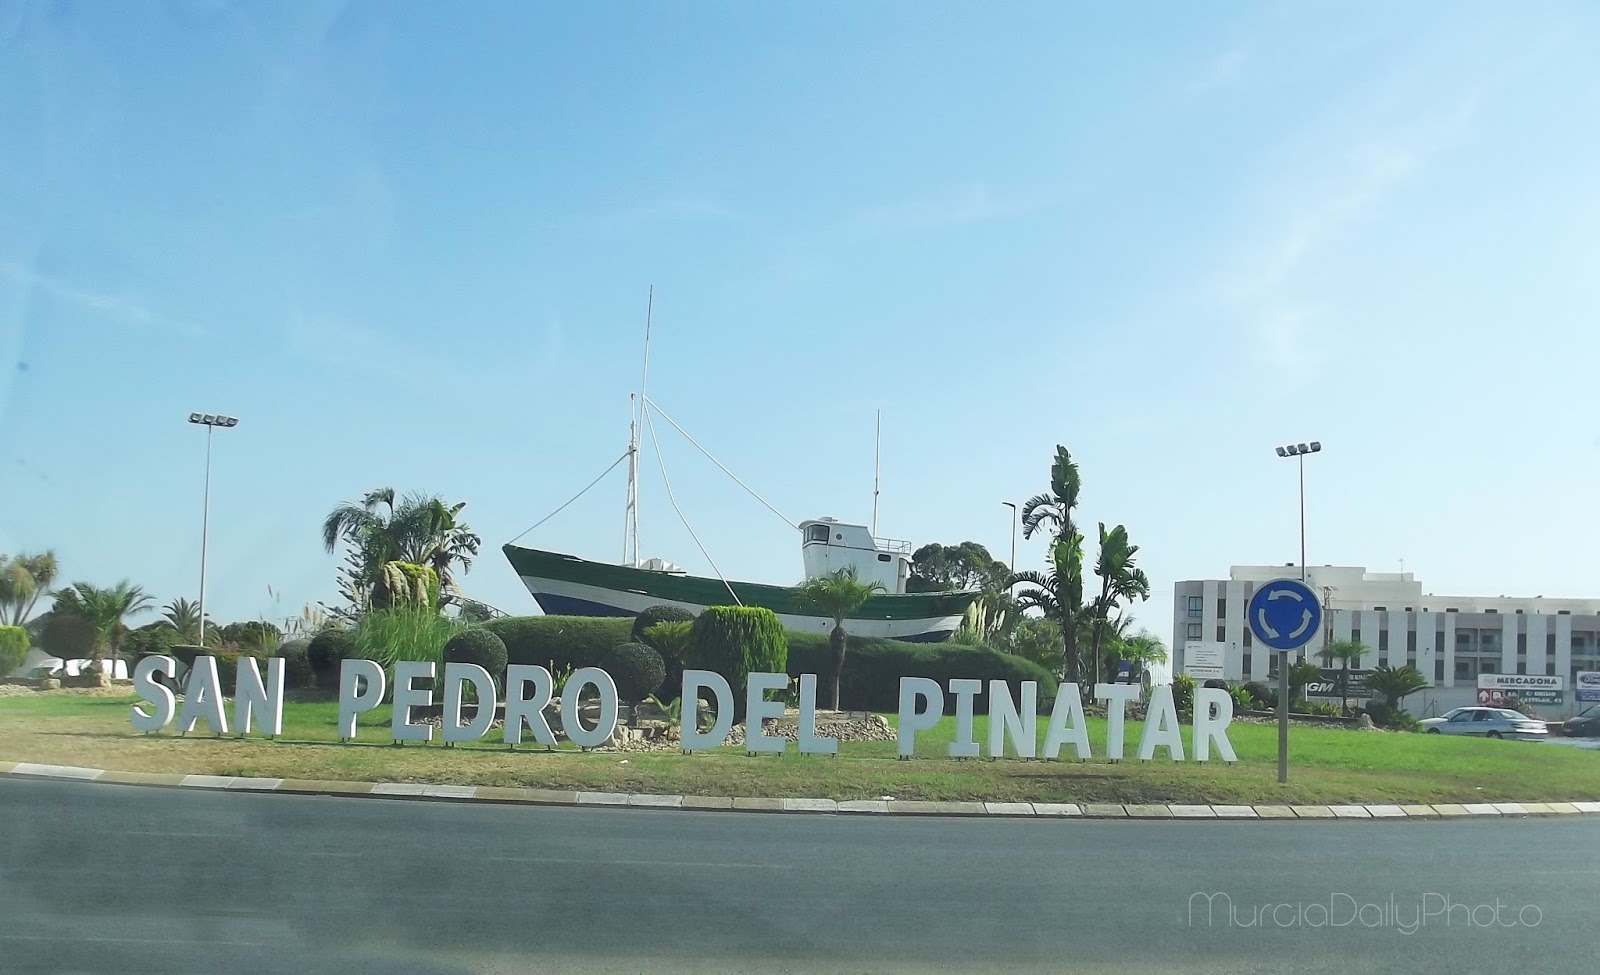 san pedro del pinatar chatrooms For the cheapest rates on hotels in san pedro del pinatar, spain, visit cheaproomscom® we offer the best rate guaranteed along with real guest reviews.